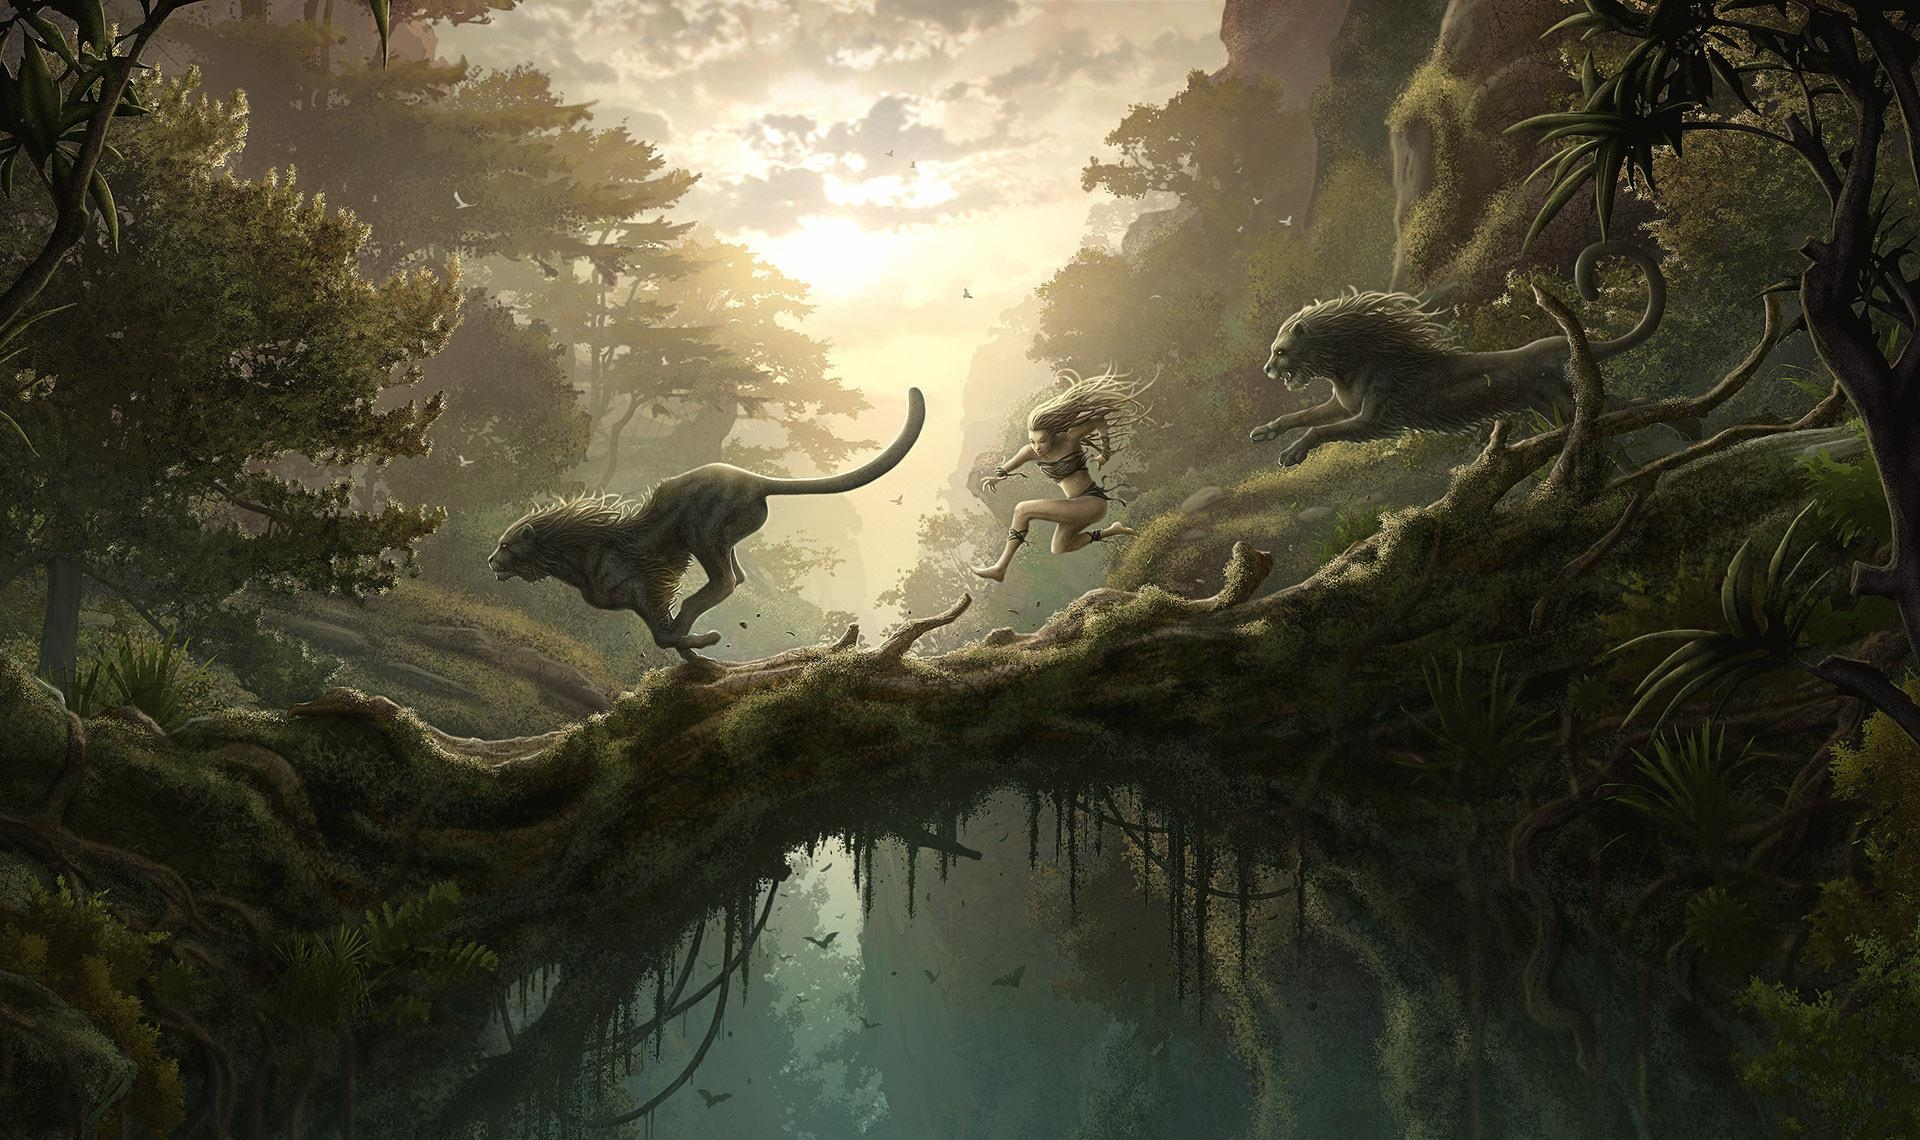 113576 download wallpaper Fantasy, Jungle, Girl, Bounce, Jump, Bridge, Lions screensavers and pictures for free